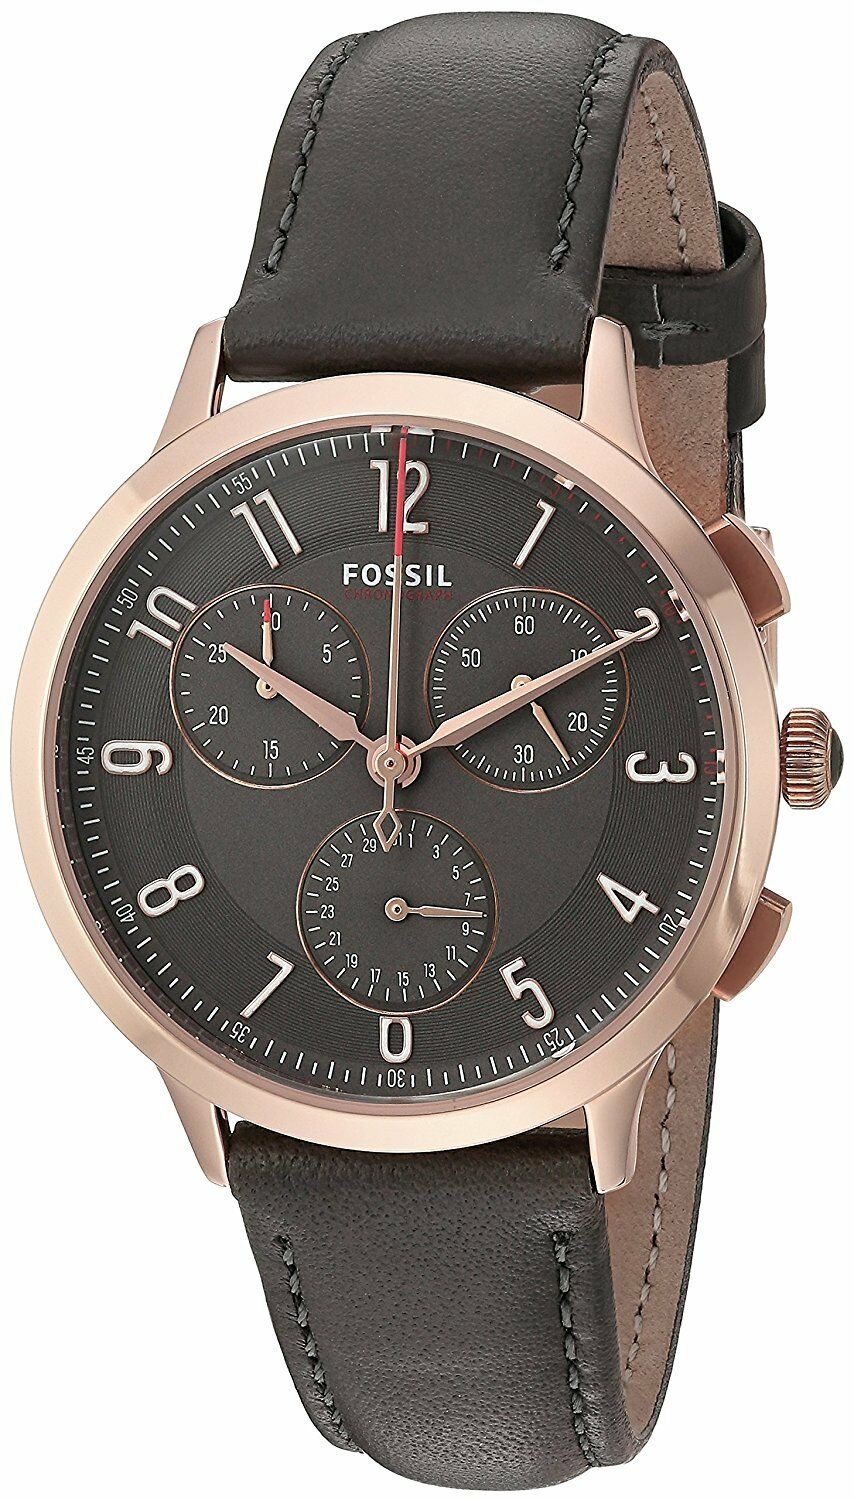 Fossil Ch3099 Womens Abilene Sport Rose Gold Steel Gray Leather Es3862 Original 1 Of 3only 0 Available